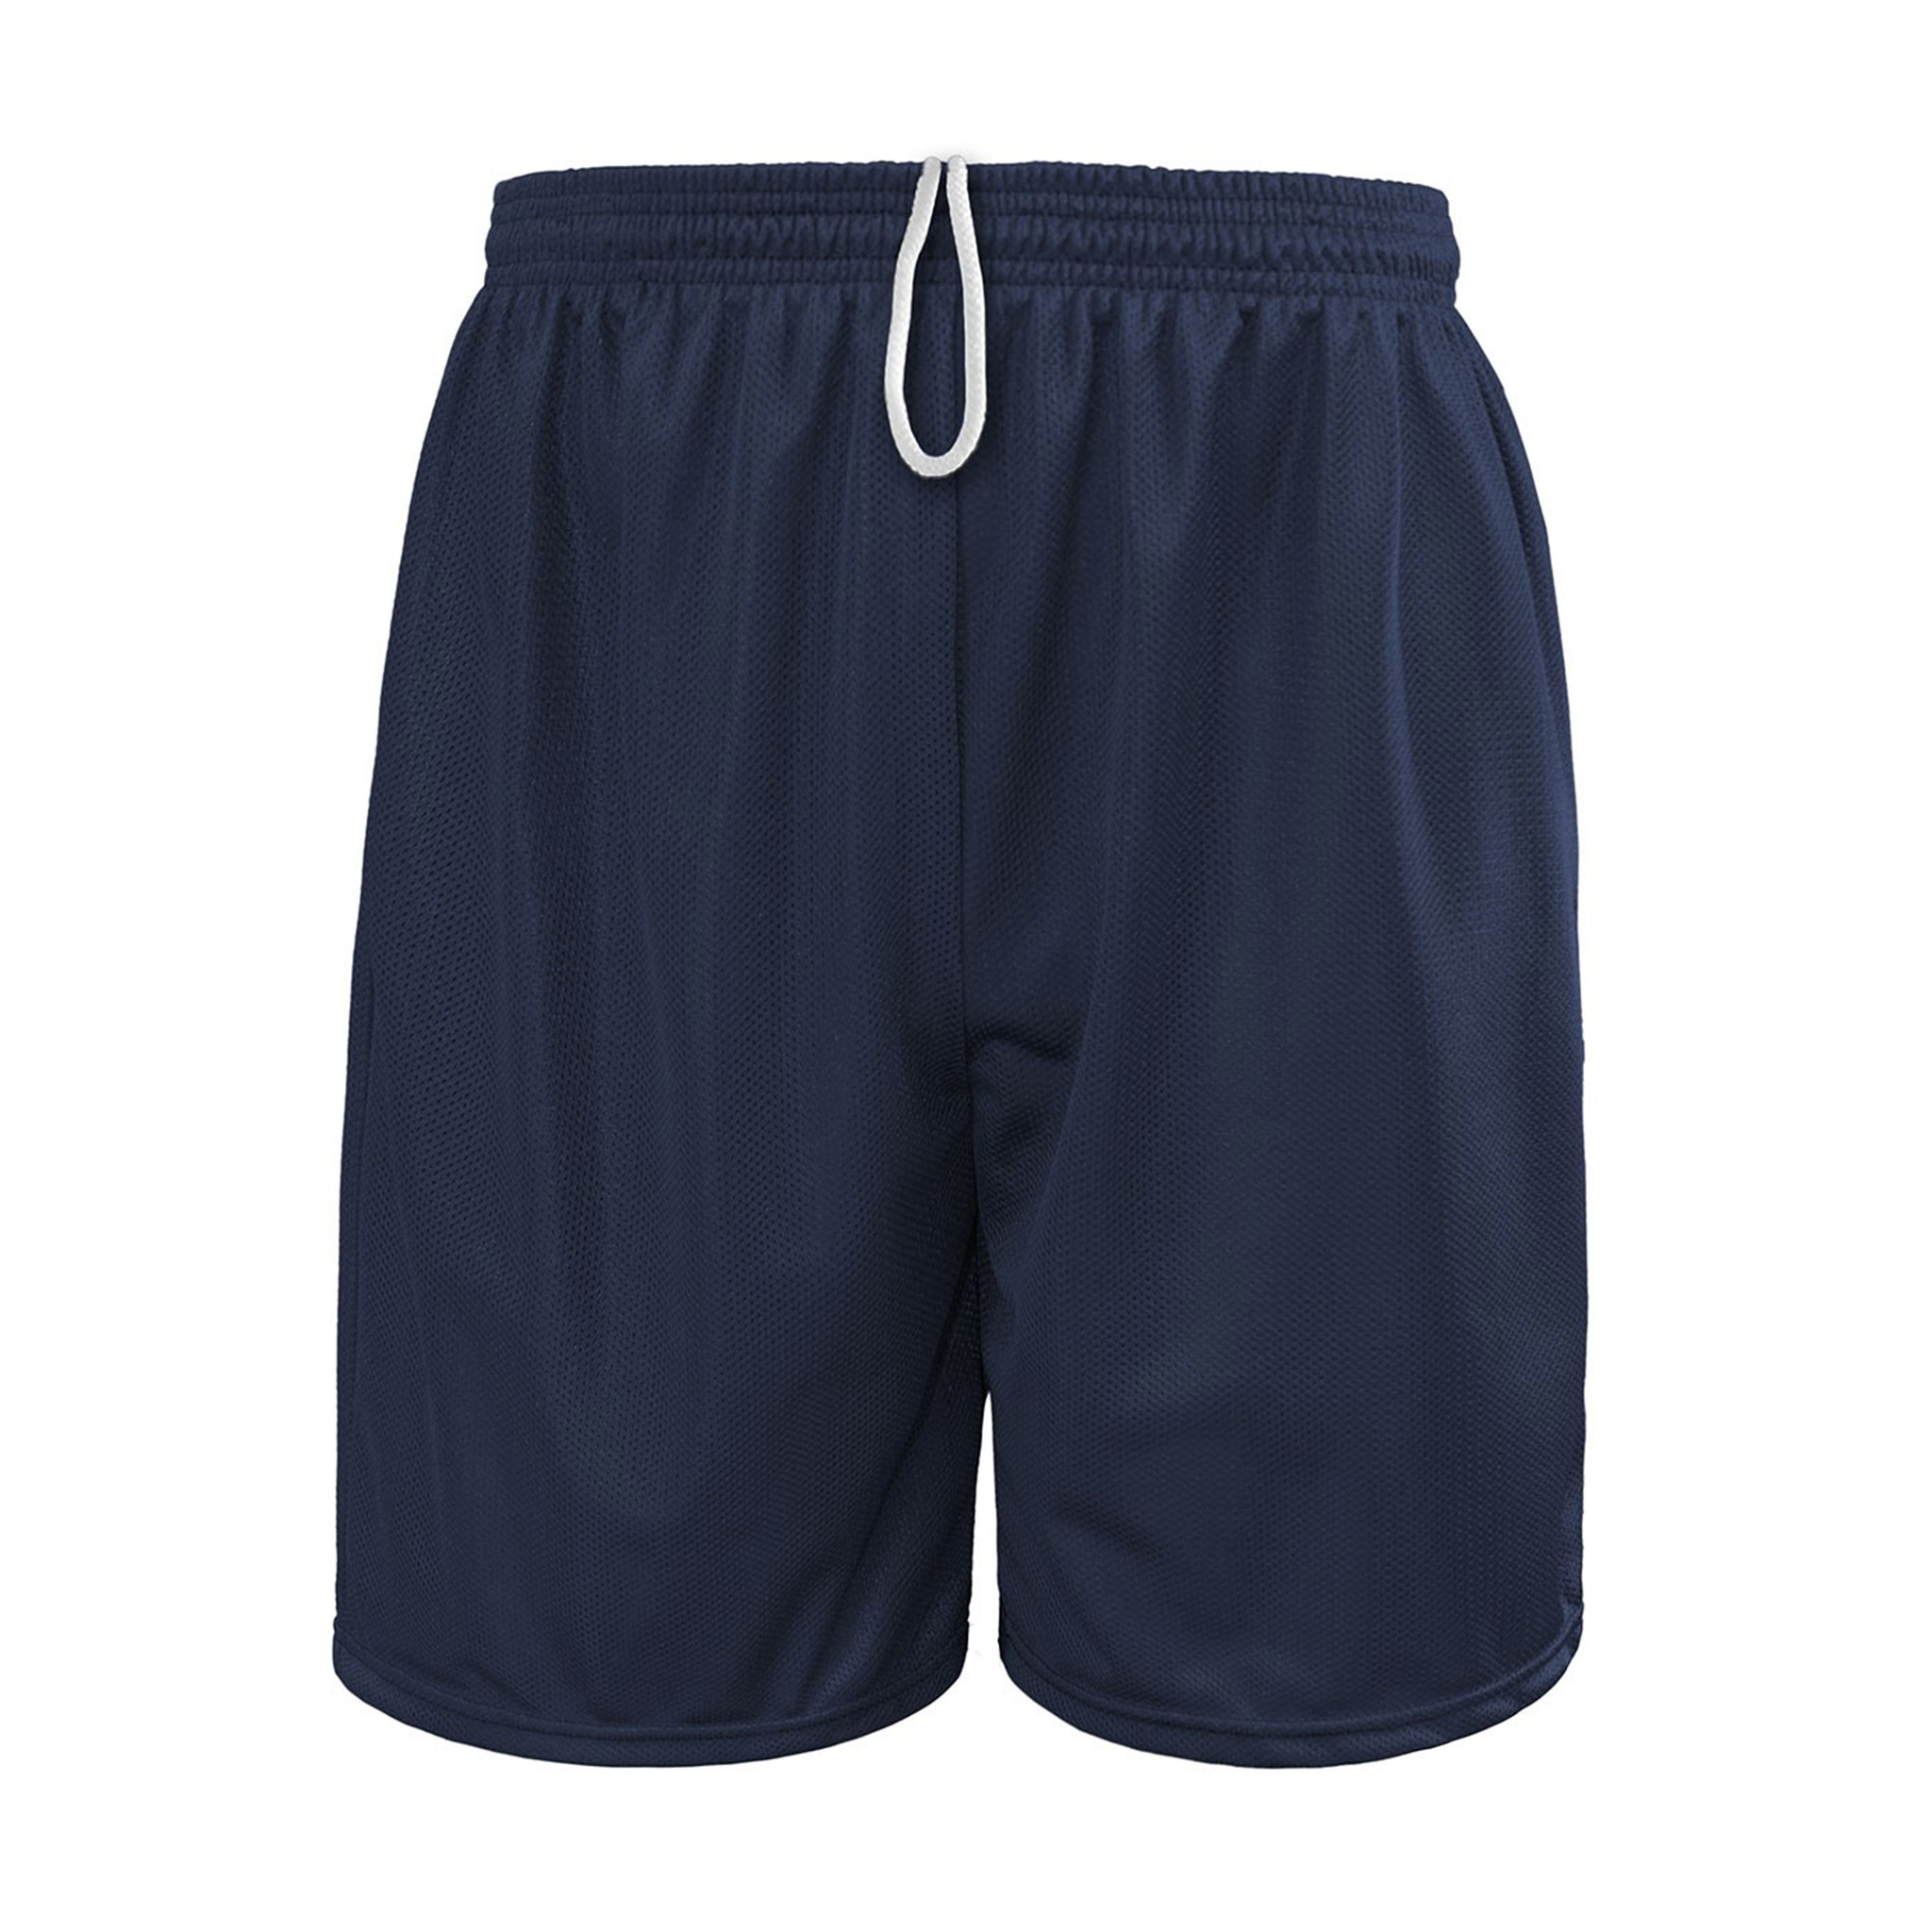 Soffe Boys Navy Mesh Shorts